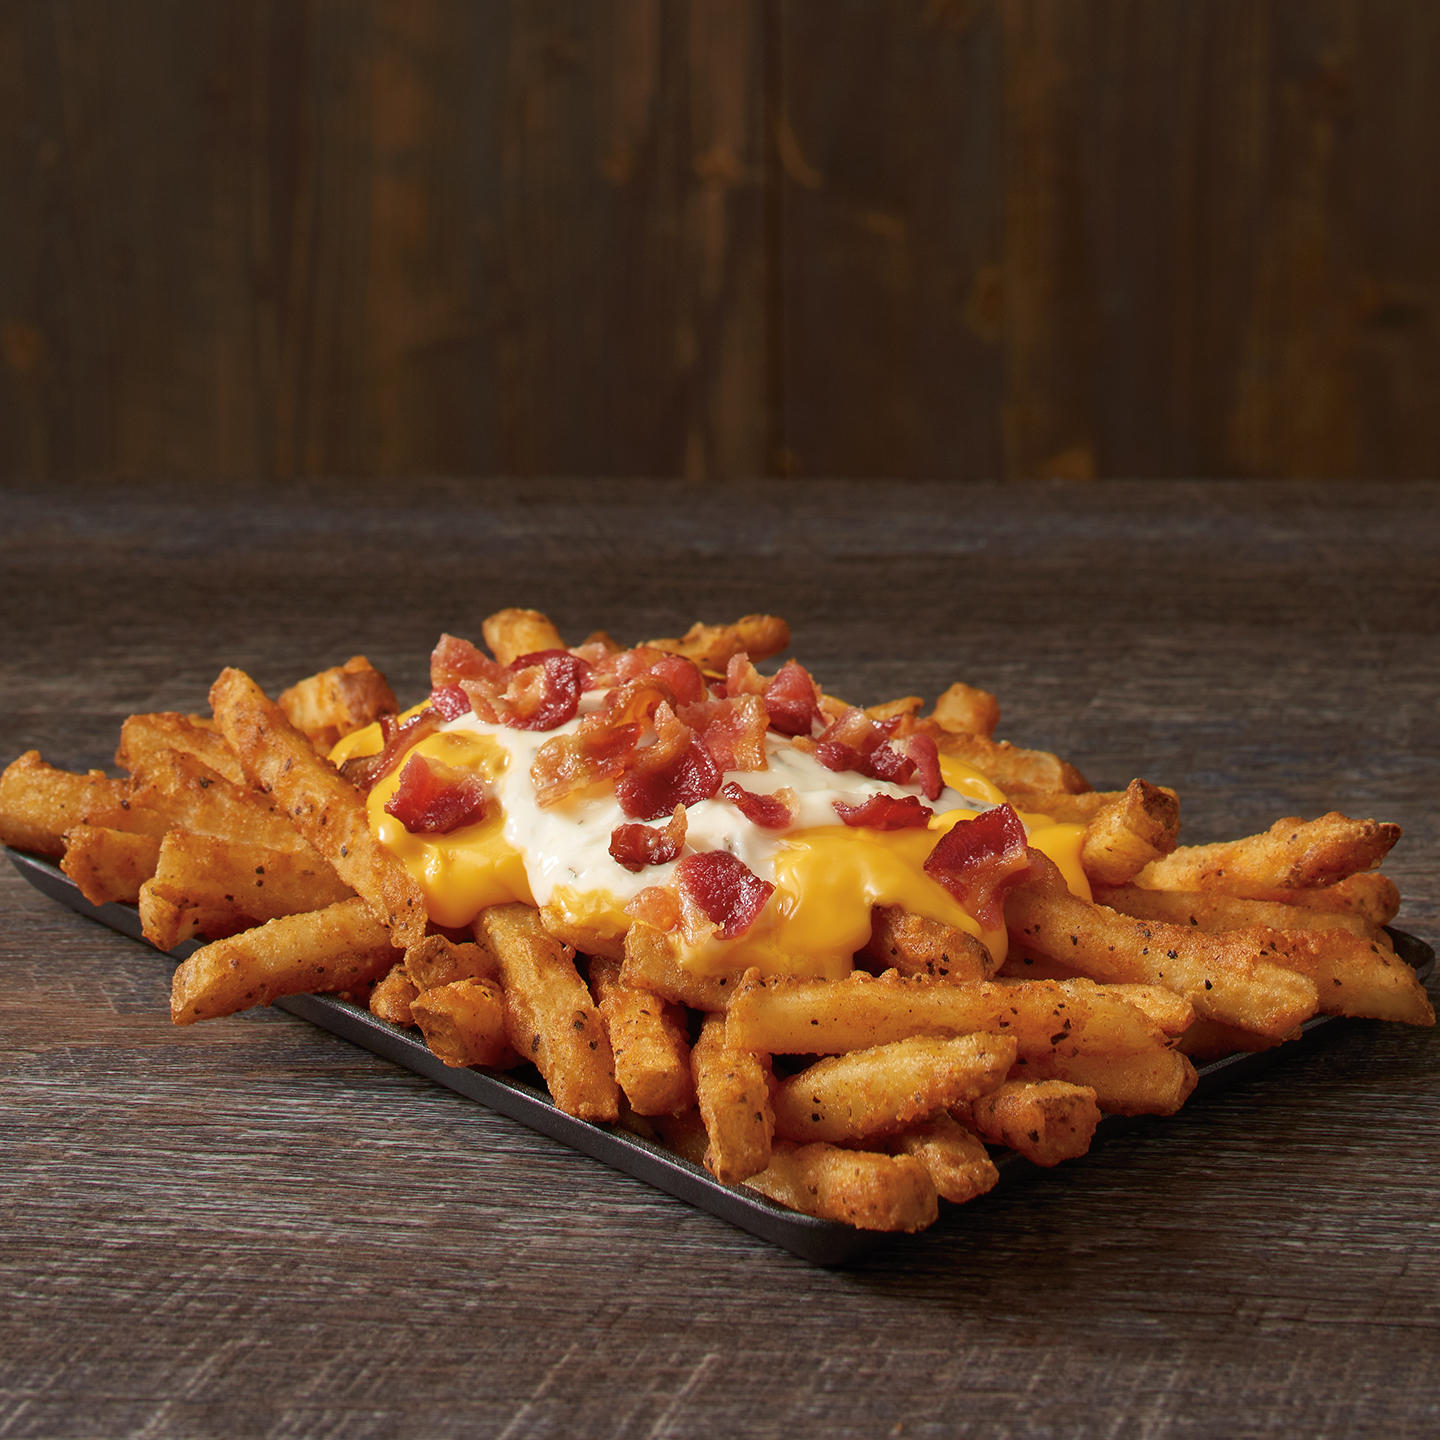 Our Famous Seasoned Fries topped with cheese, ranch and crispy bacon.